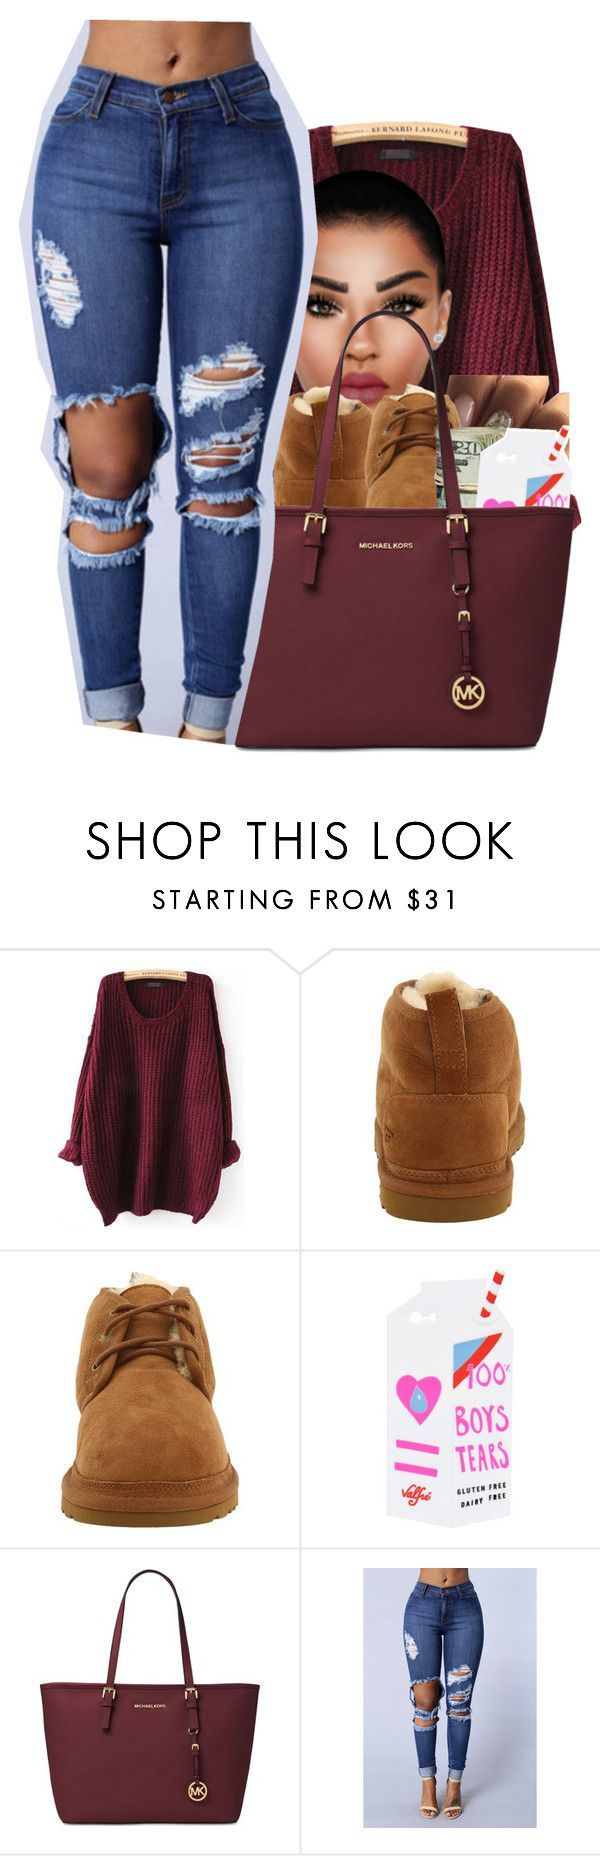 #66: Bald Baddies by chilly-gvbx on Polyvore featuring UGG Australia, Valfré and Michael Kors